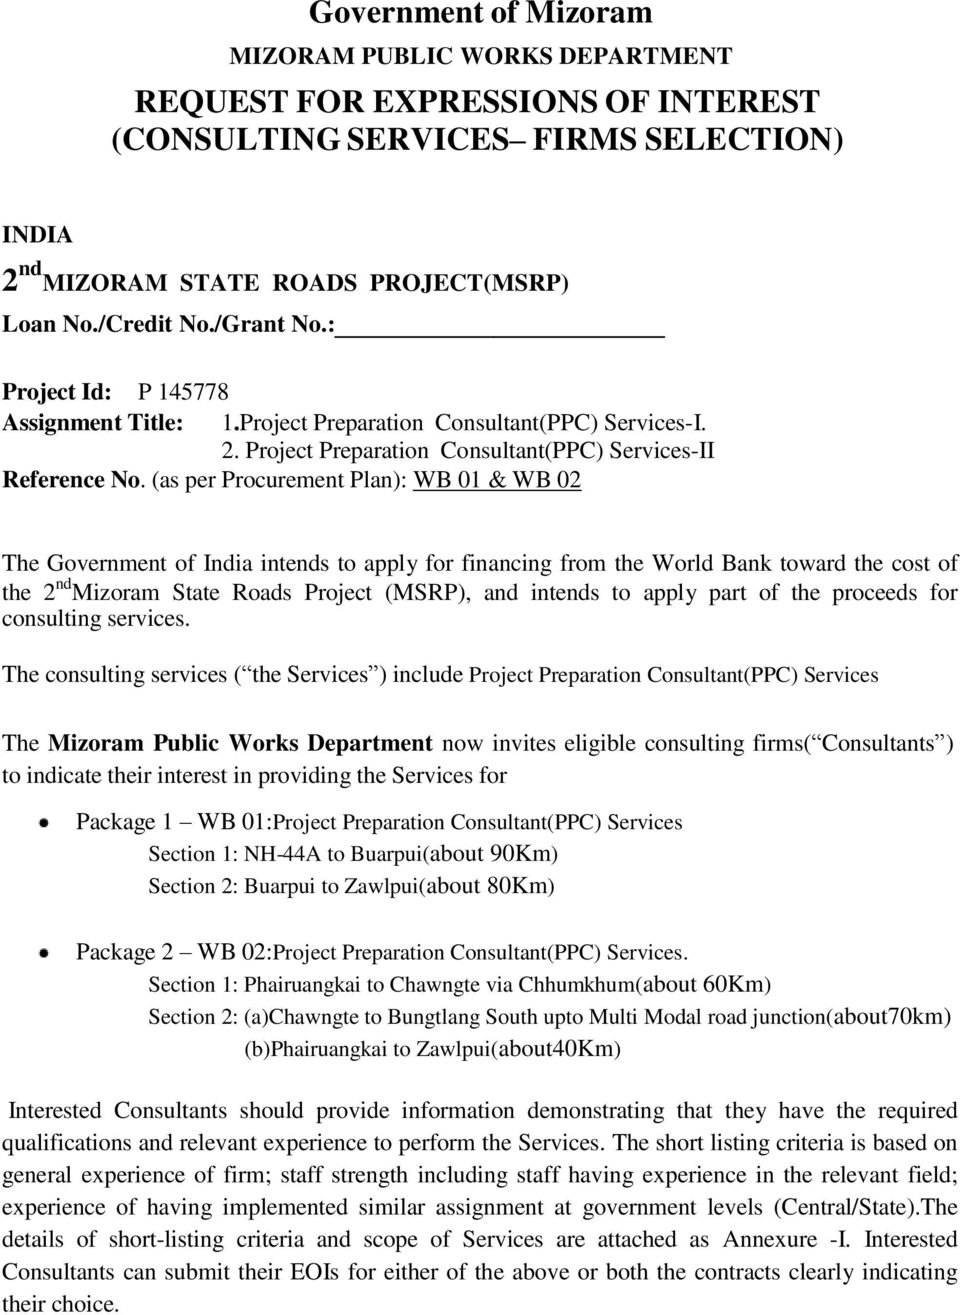 (as per Procurement Plan): WB 01 & WB 02 The Government of India intends to apply for financing from the World Bank toward the cost of the 2 nd Mizoram State Roads Project (MSRP), and intends to